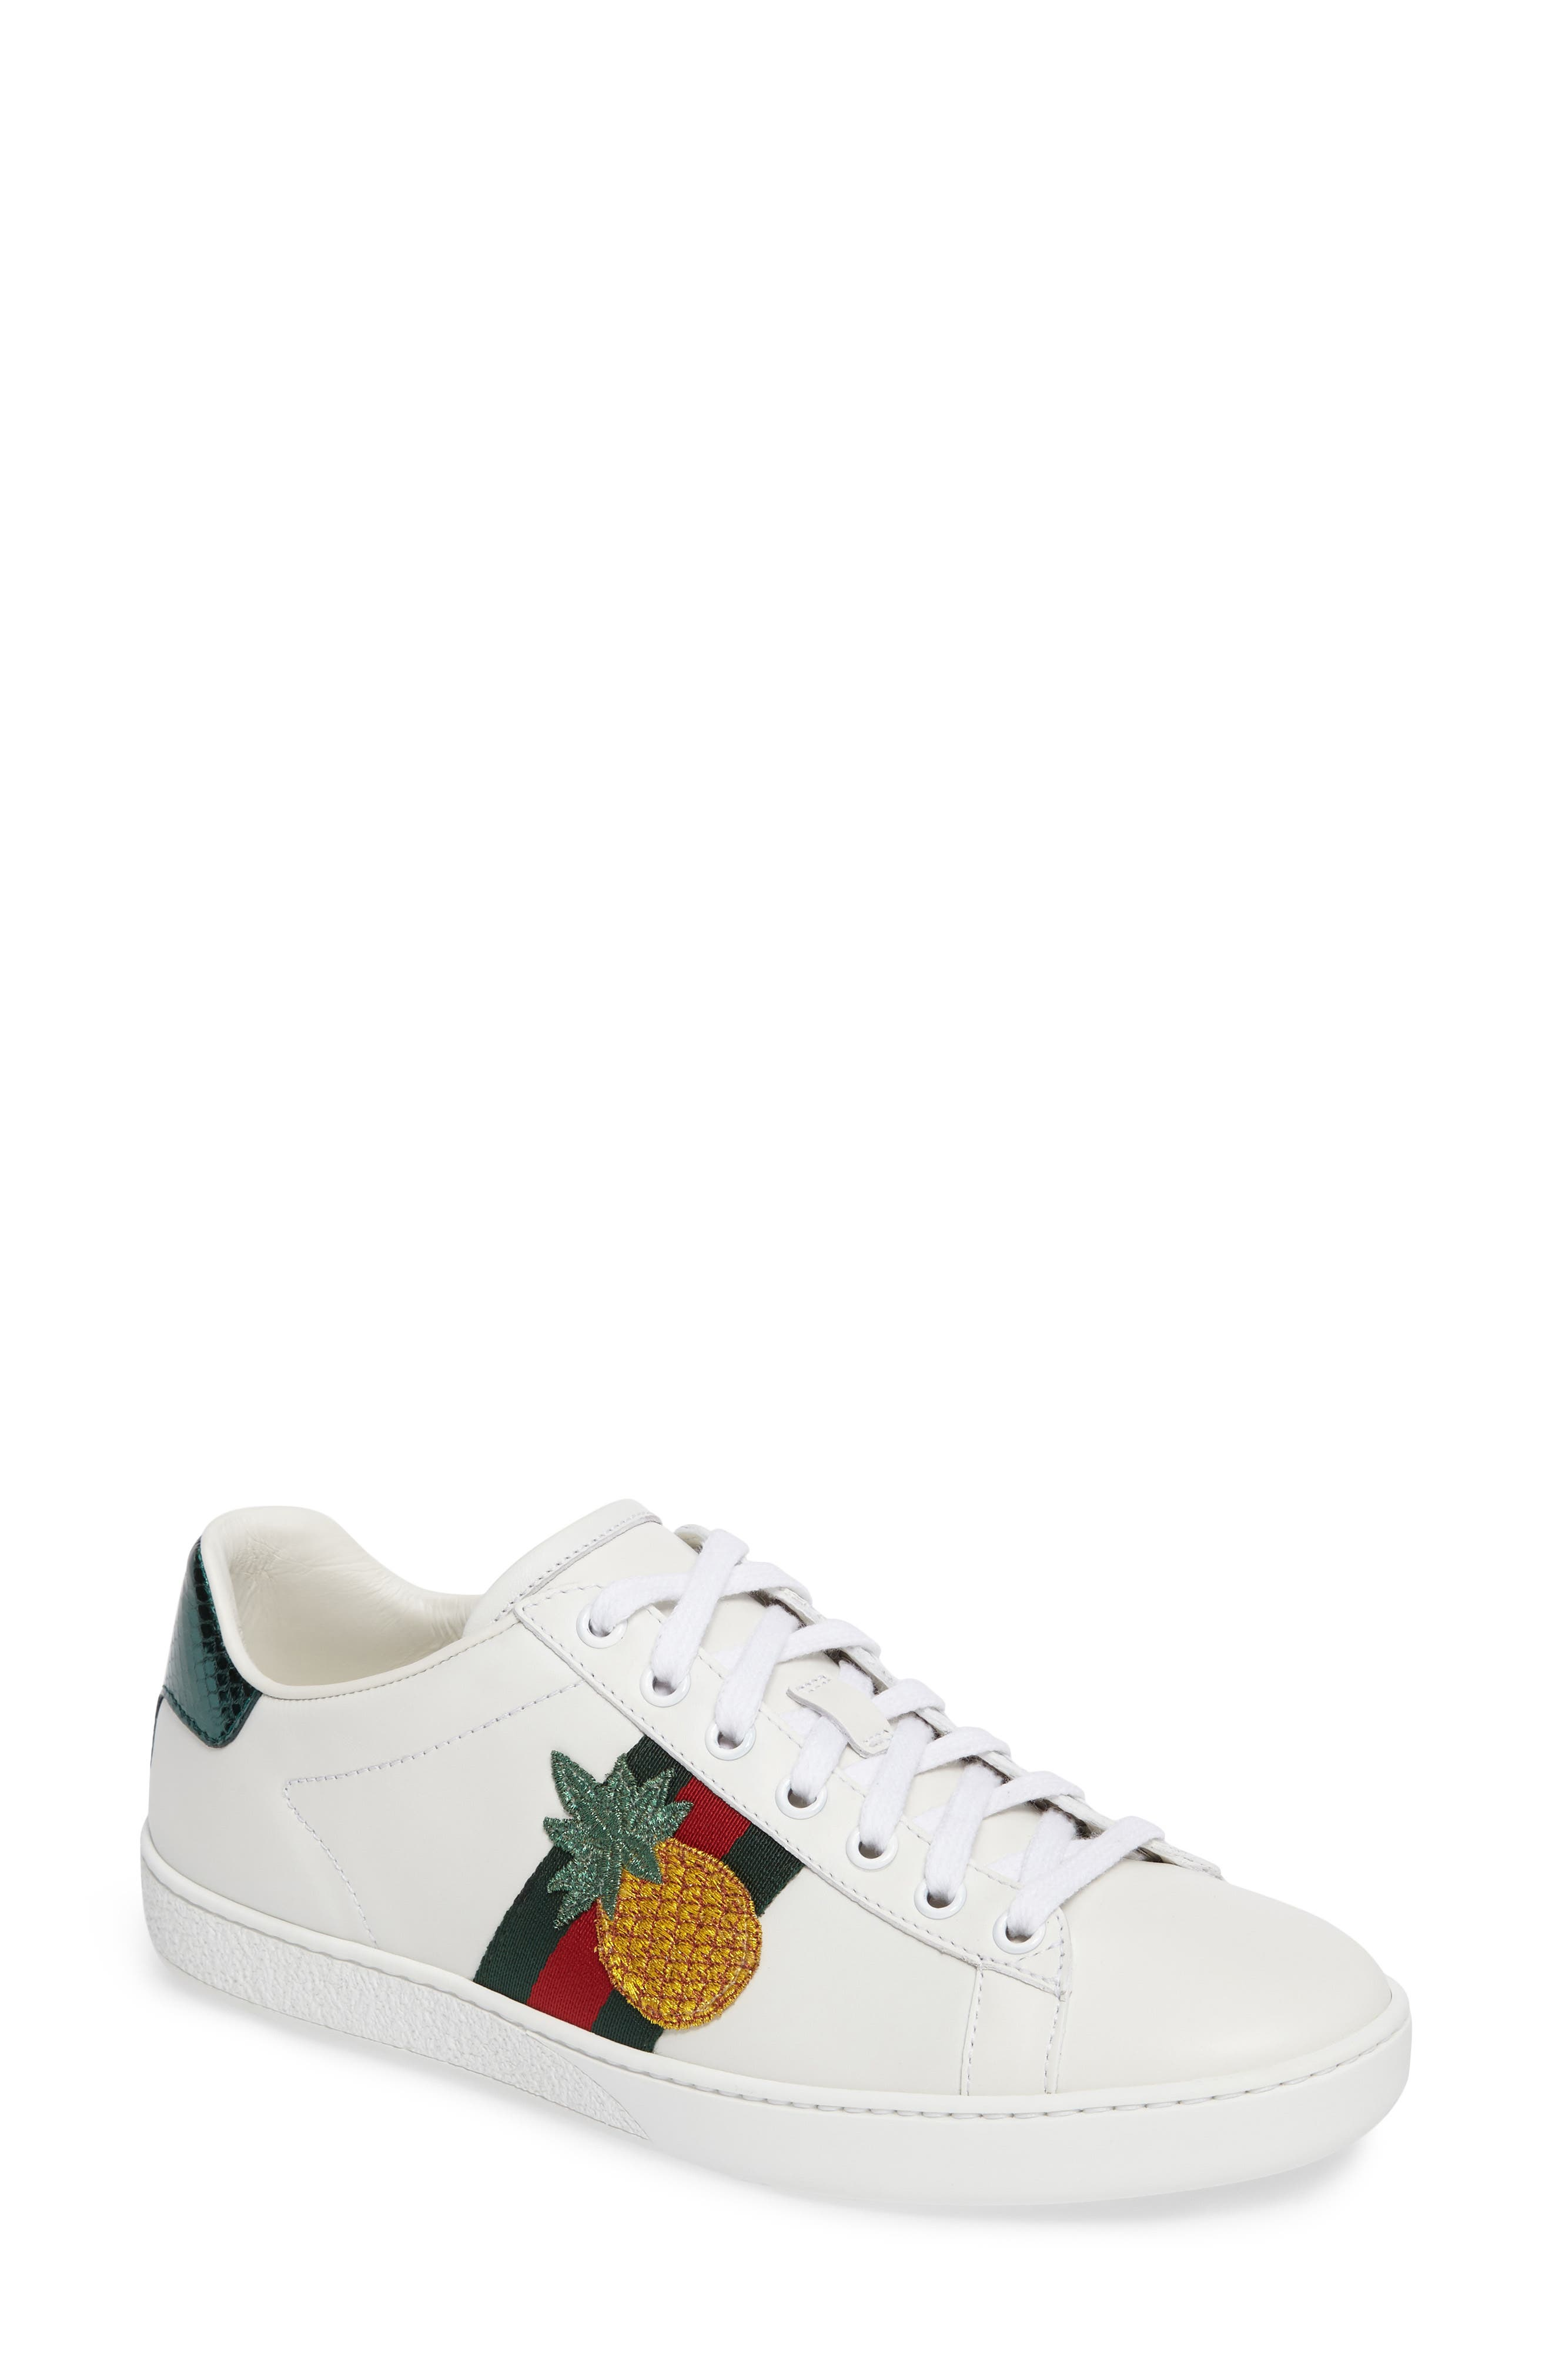 Gucci New Ace Pineapple Sneaker (Women)